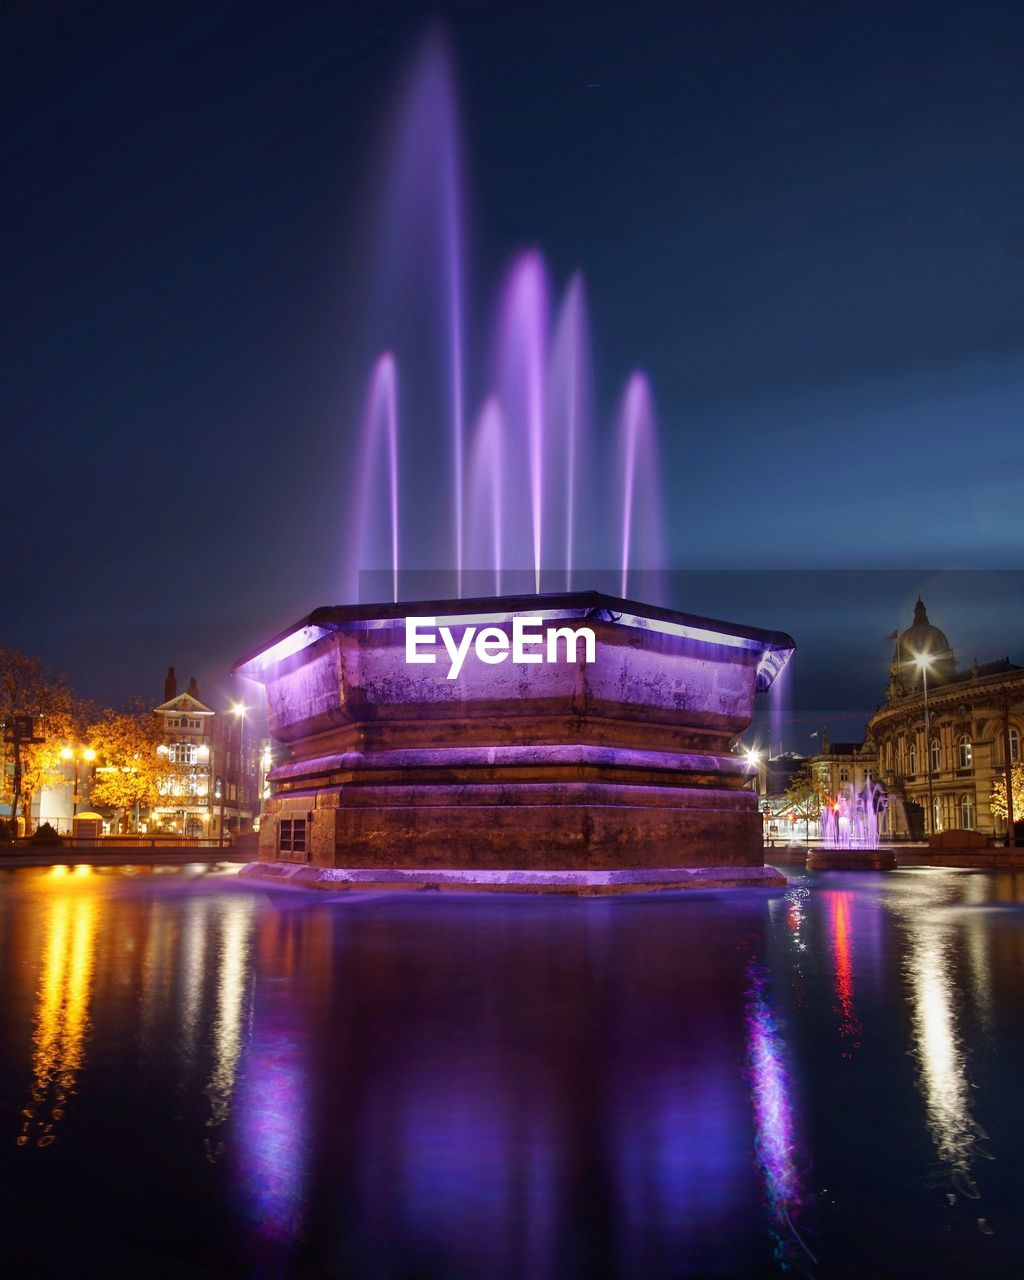 illuminated, architecture, night, built structure, water, building exterior, reflection, waterfront, nature, sky, travel destinations, city, no people, building, long exposure, tourism, travel, river, purple, light